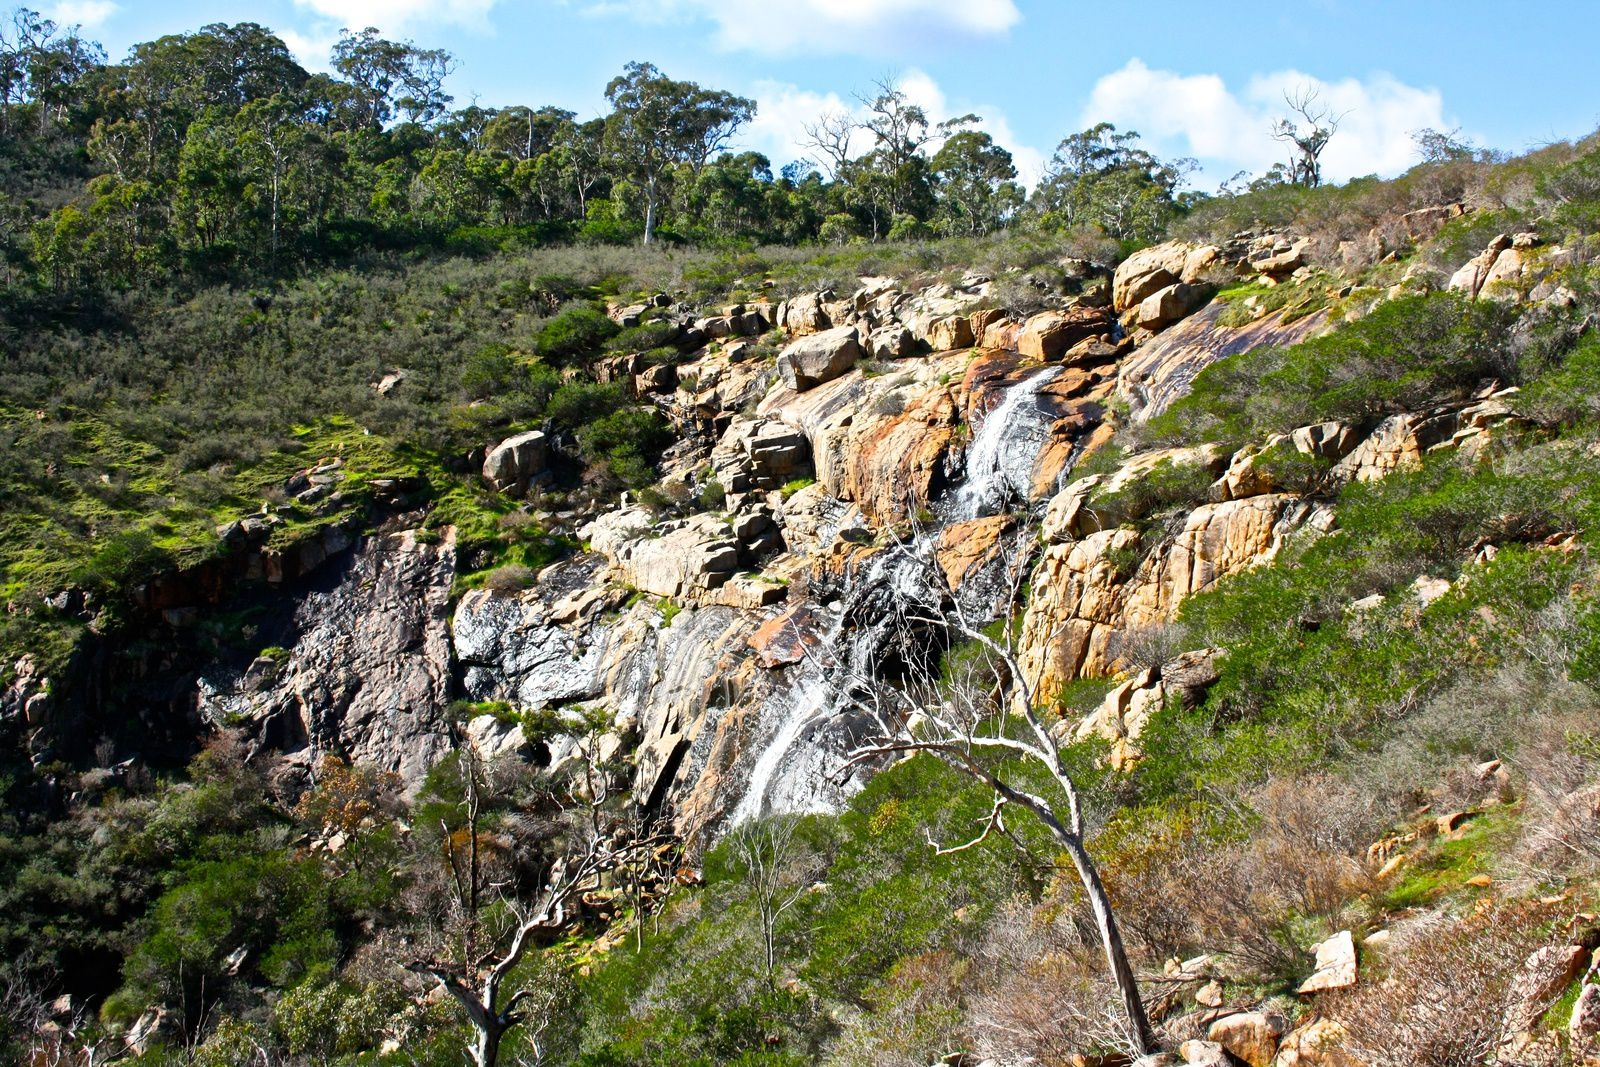 Ellis Brook Valley / Serpentine